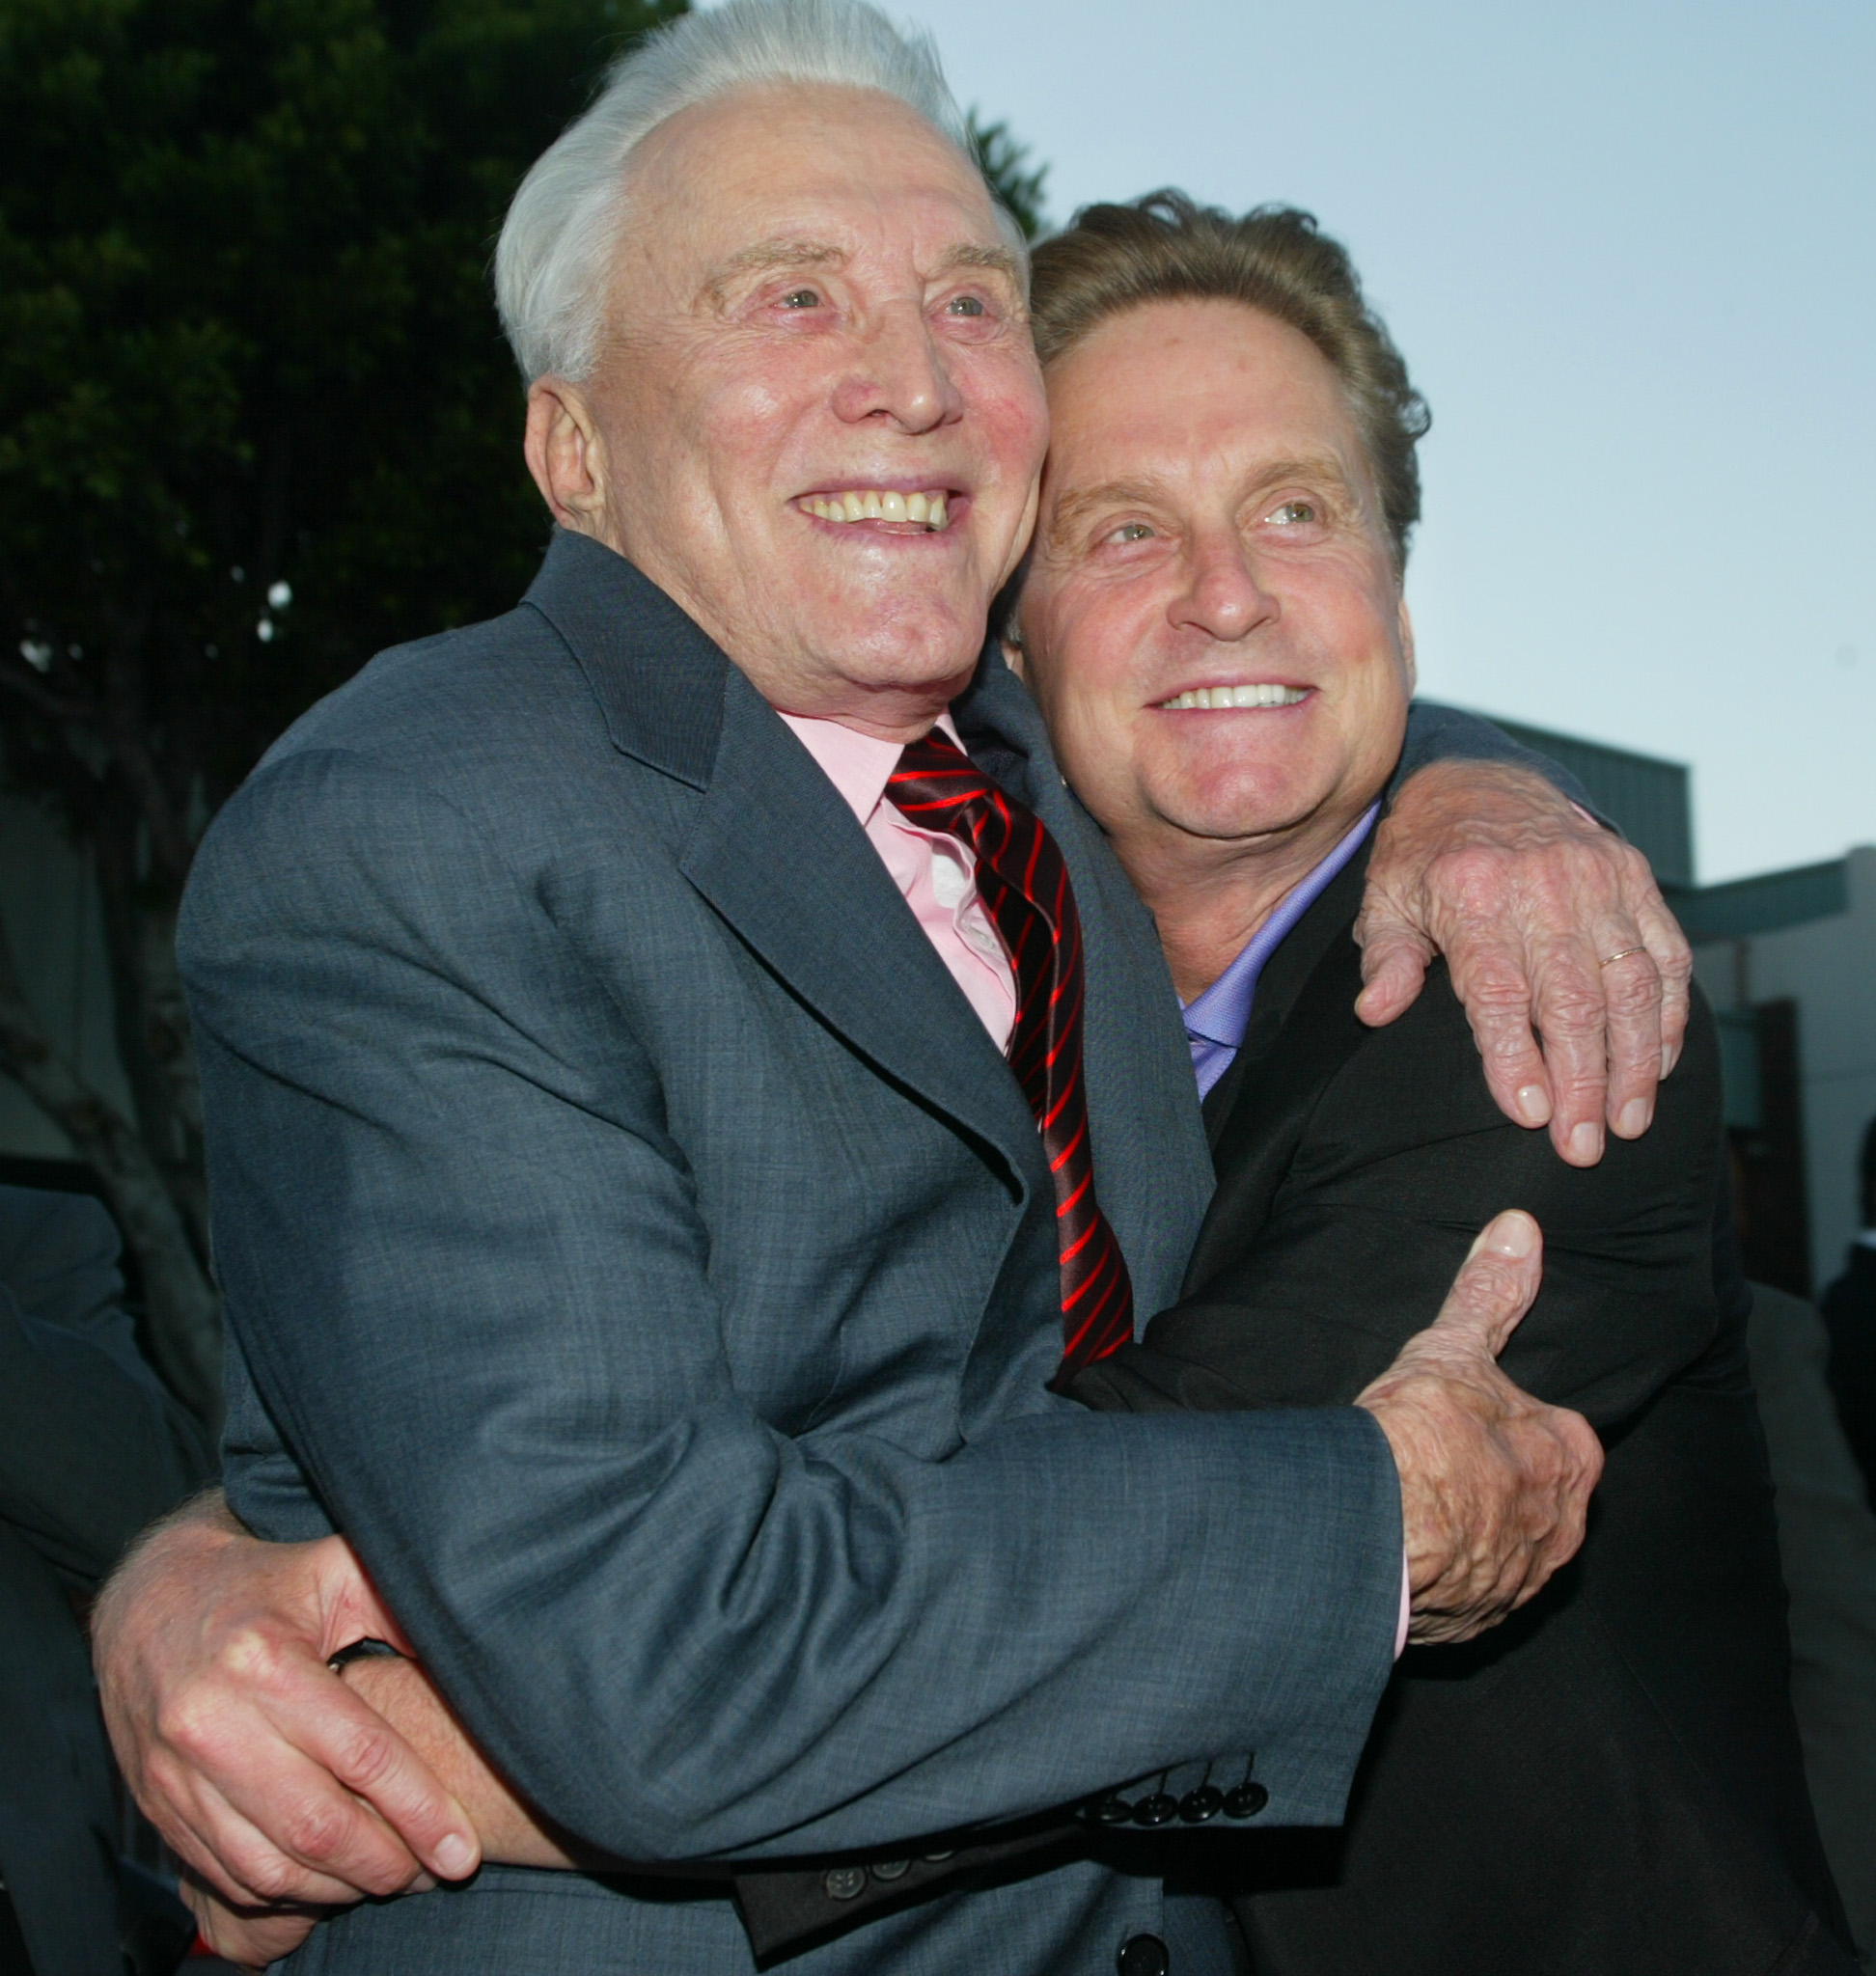 Actor Kirk Douglas (L) hugs his son, actor Michael Douglas as they arrive for the premiere of their new film